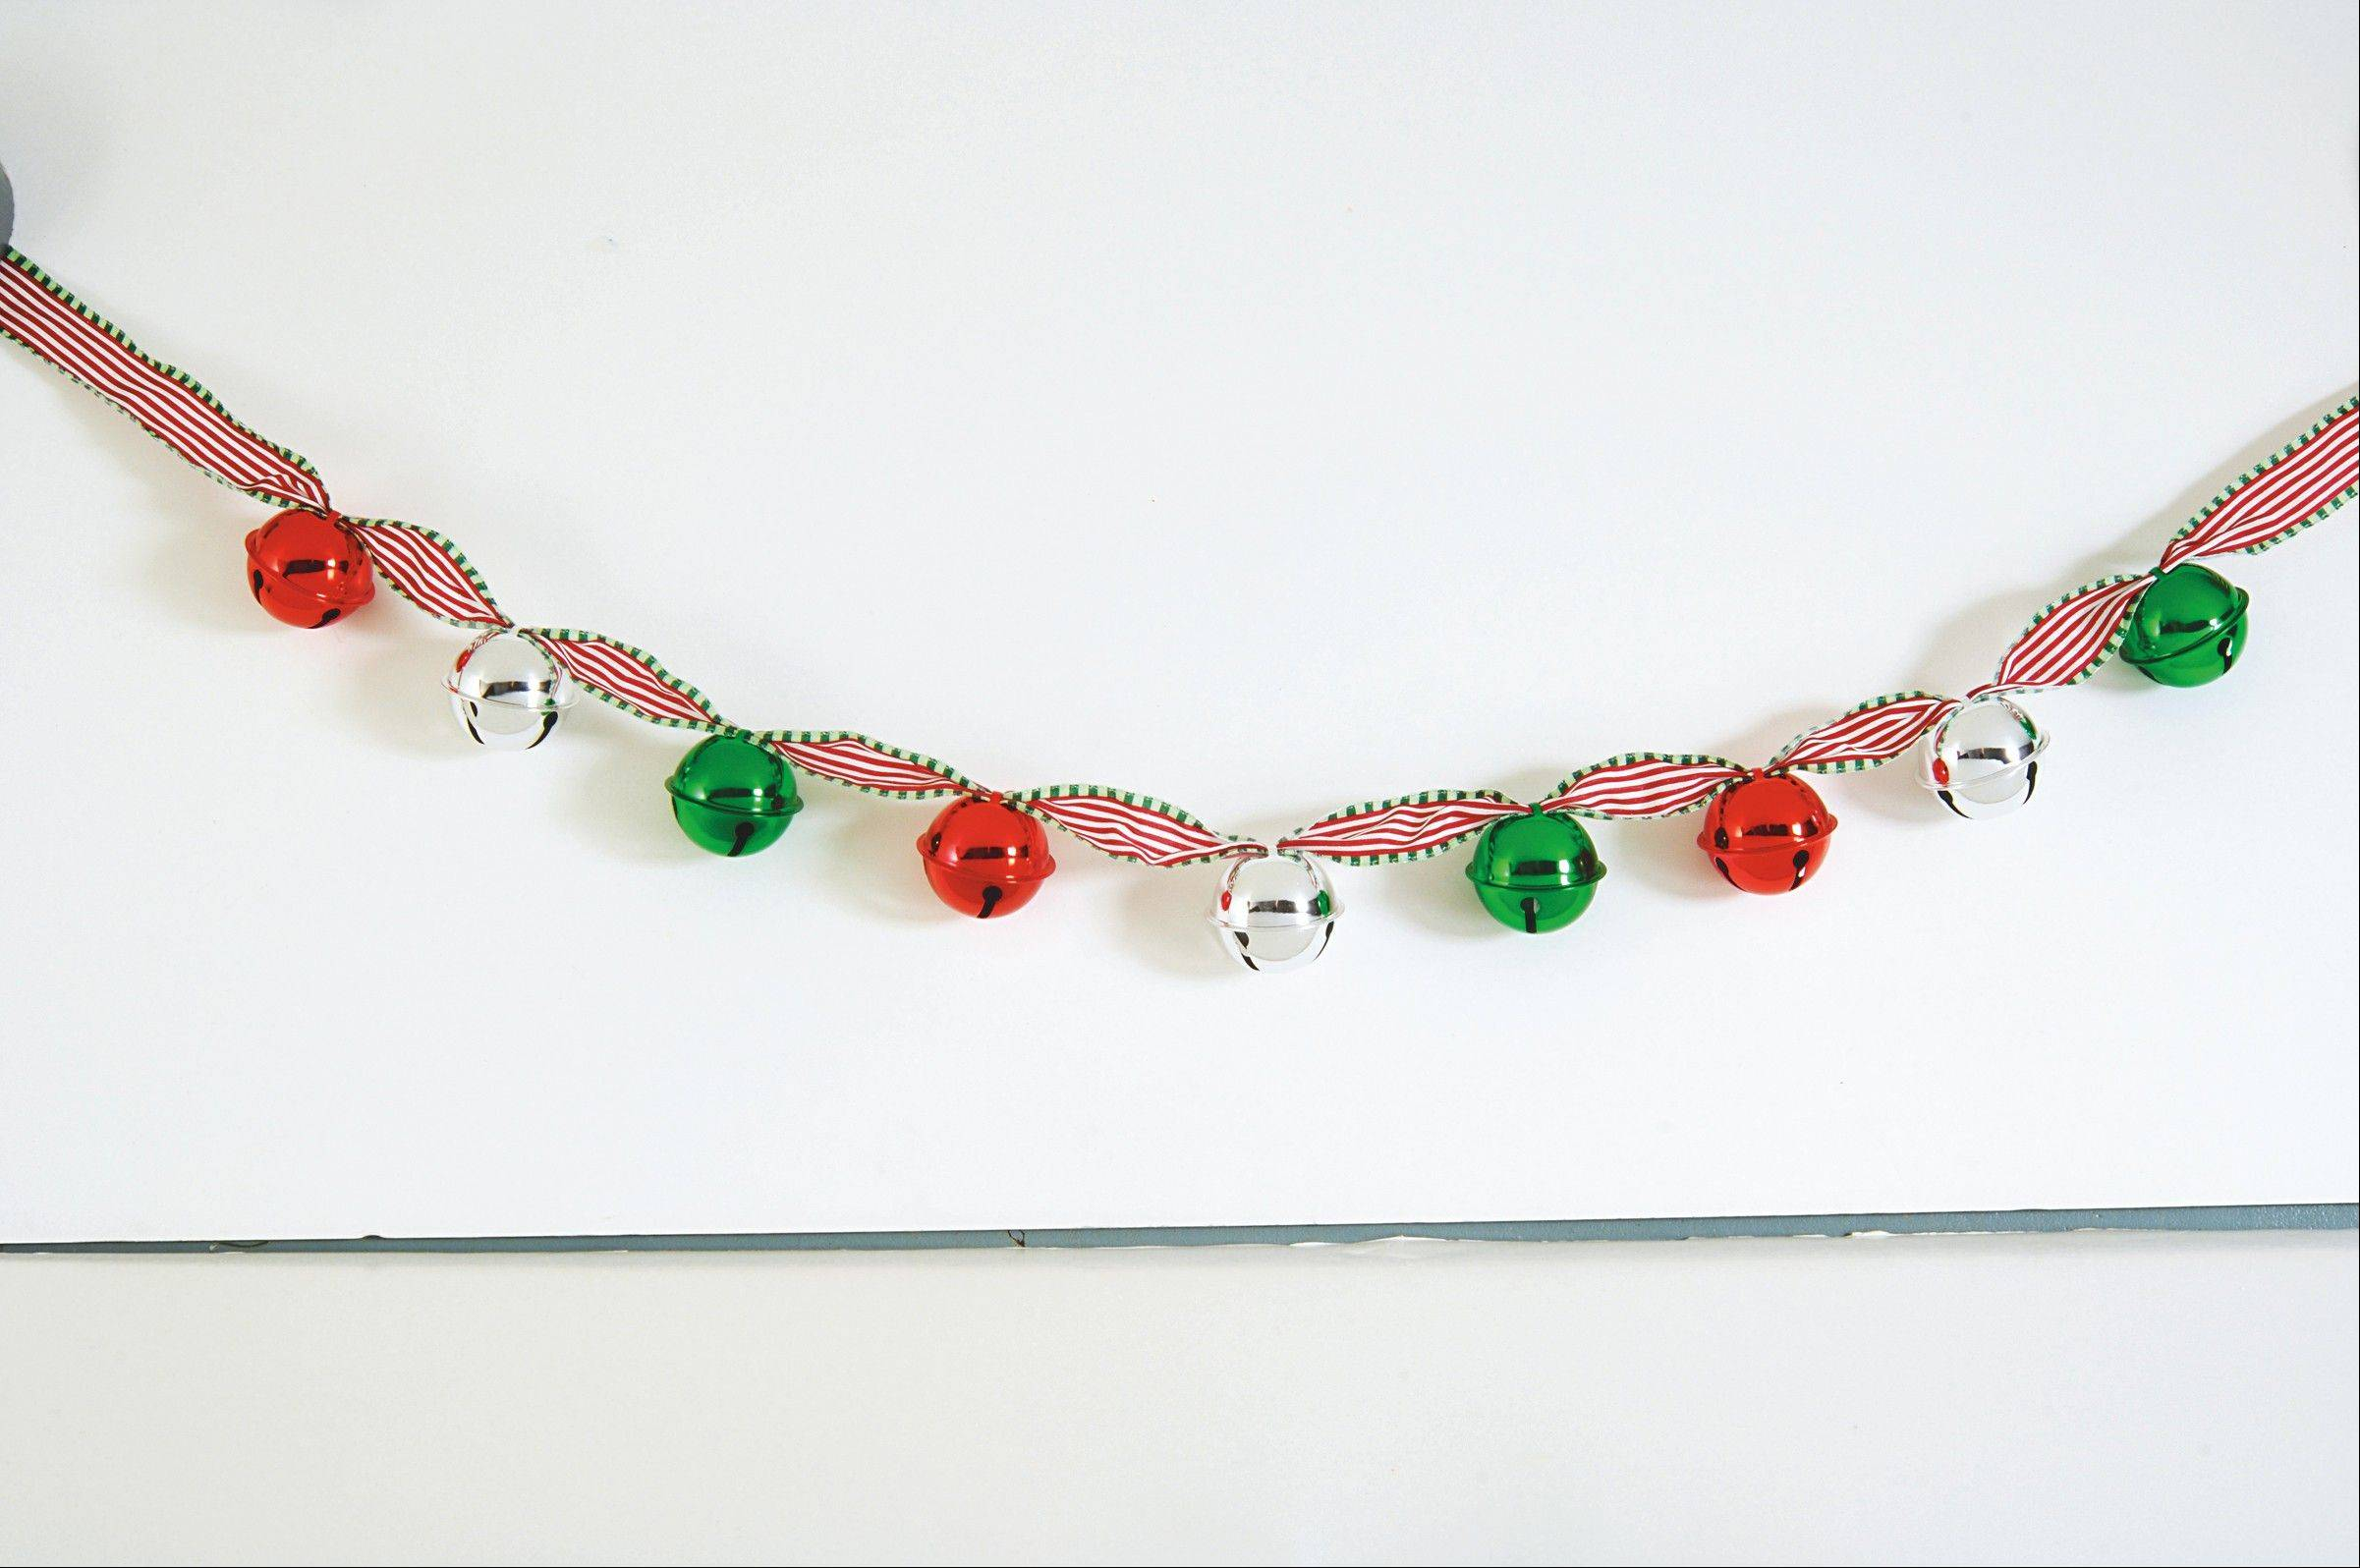 Want another quick trick to try? String shiny red, green and silver jingle bells on a seasonally striped ribbon to create a garland that's music to your ears.